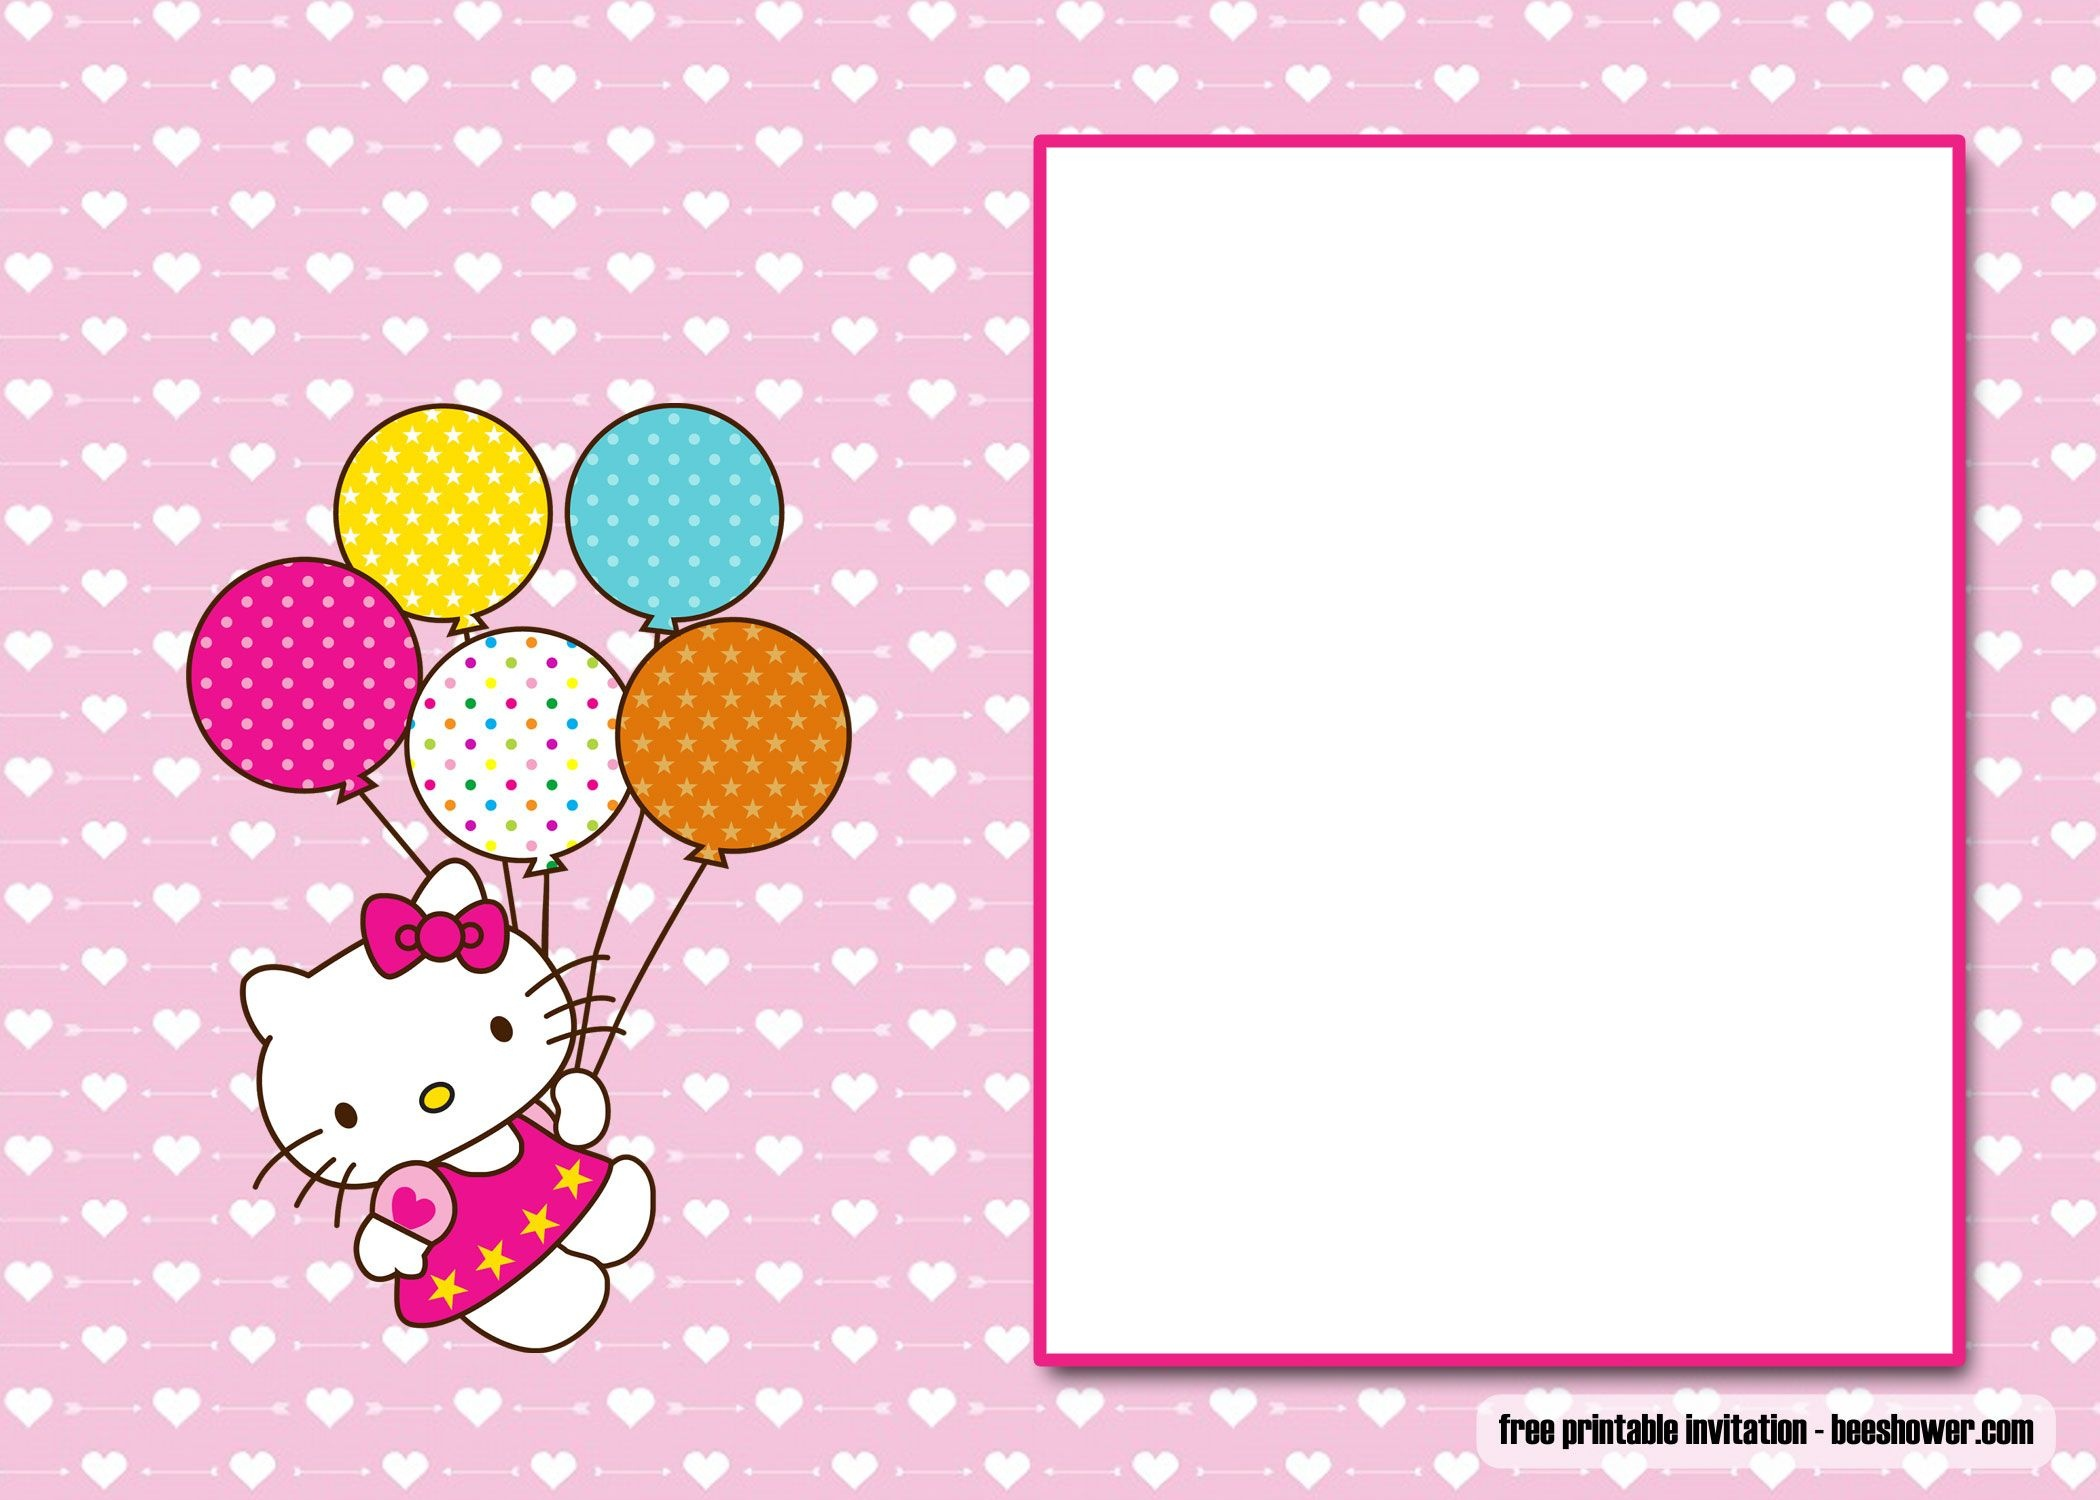 Awesome Free Perfect Hello Kitty Baby Shower Invitations | Beeshower - Free Printable Hello Kitty Baby Shower Invitations